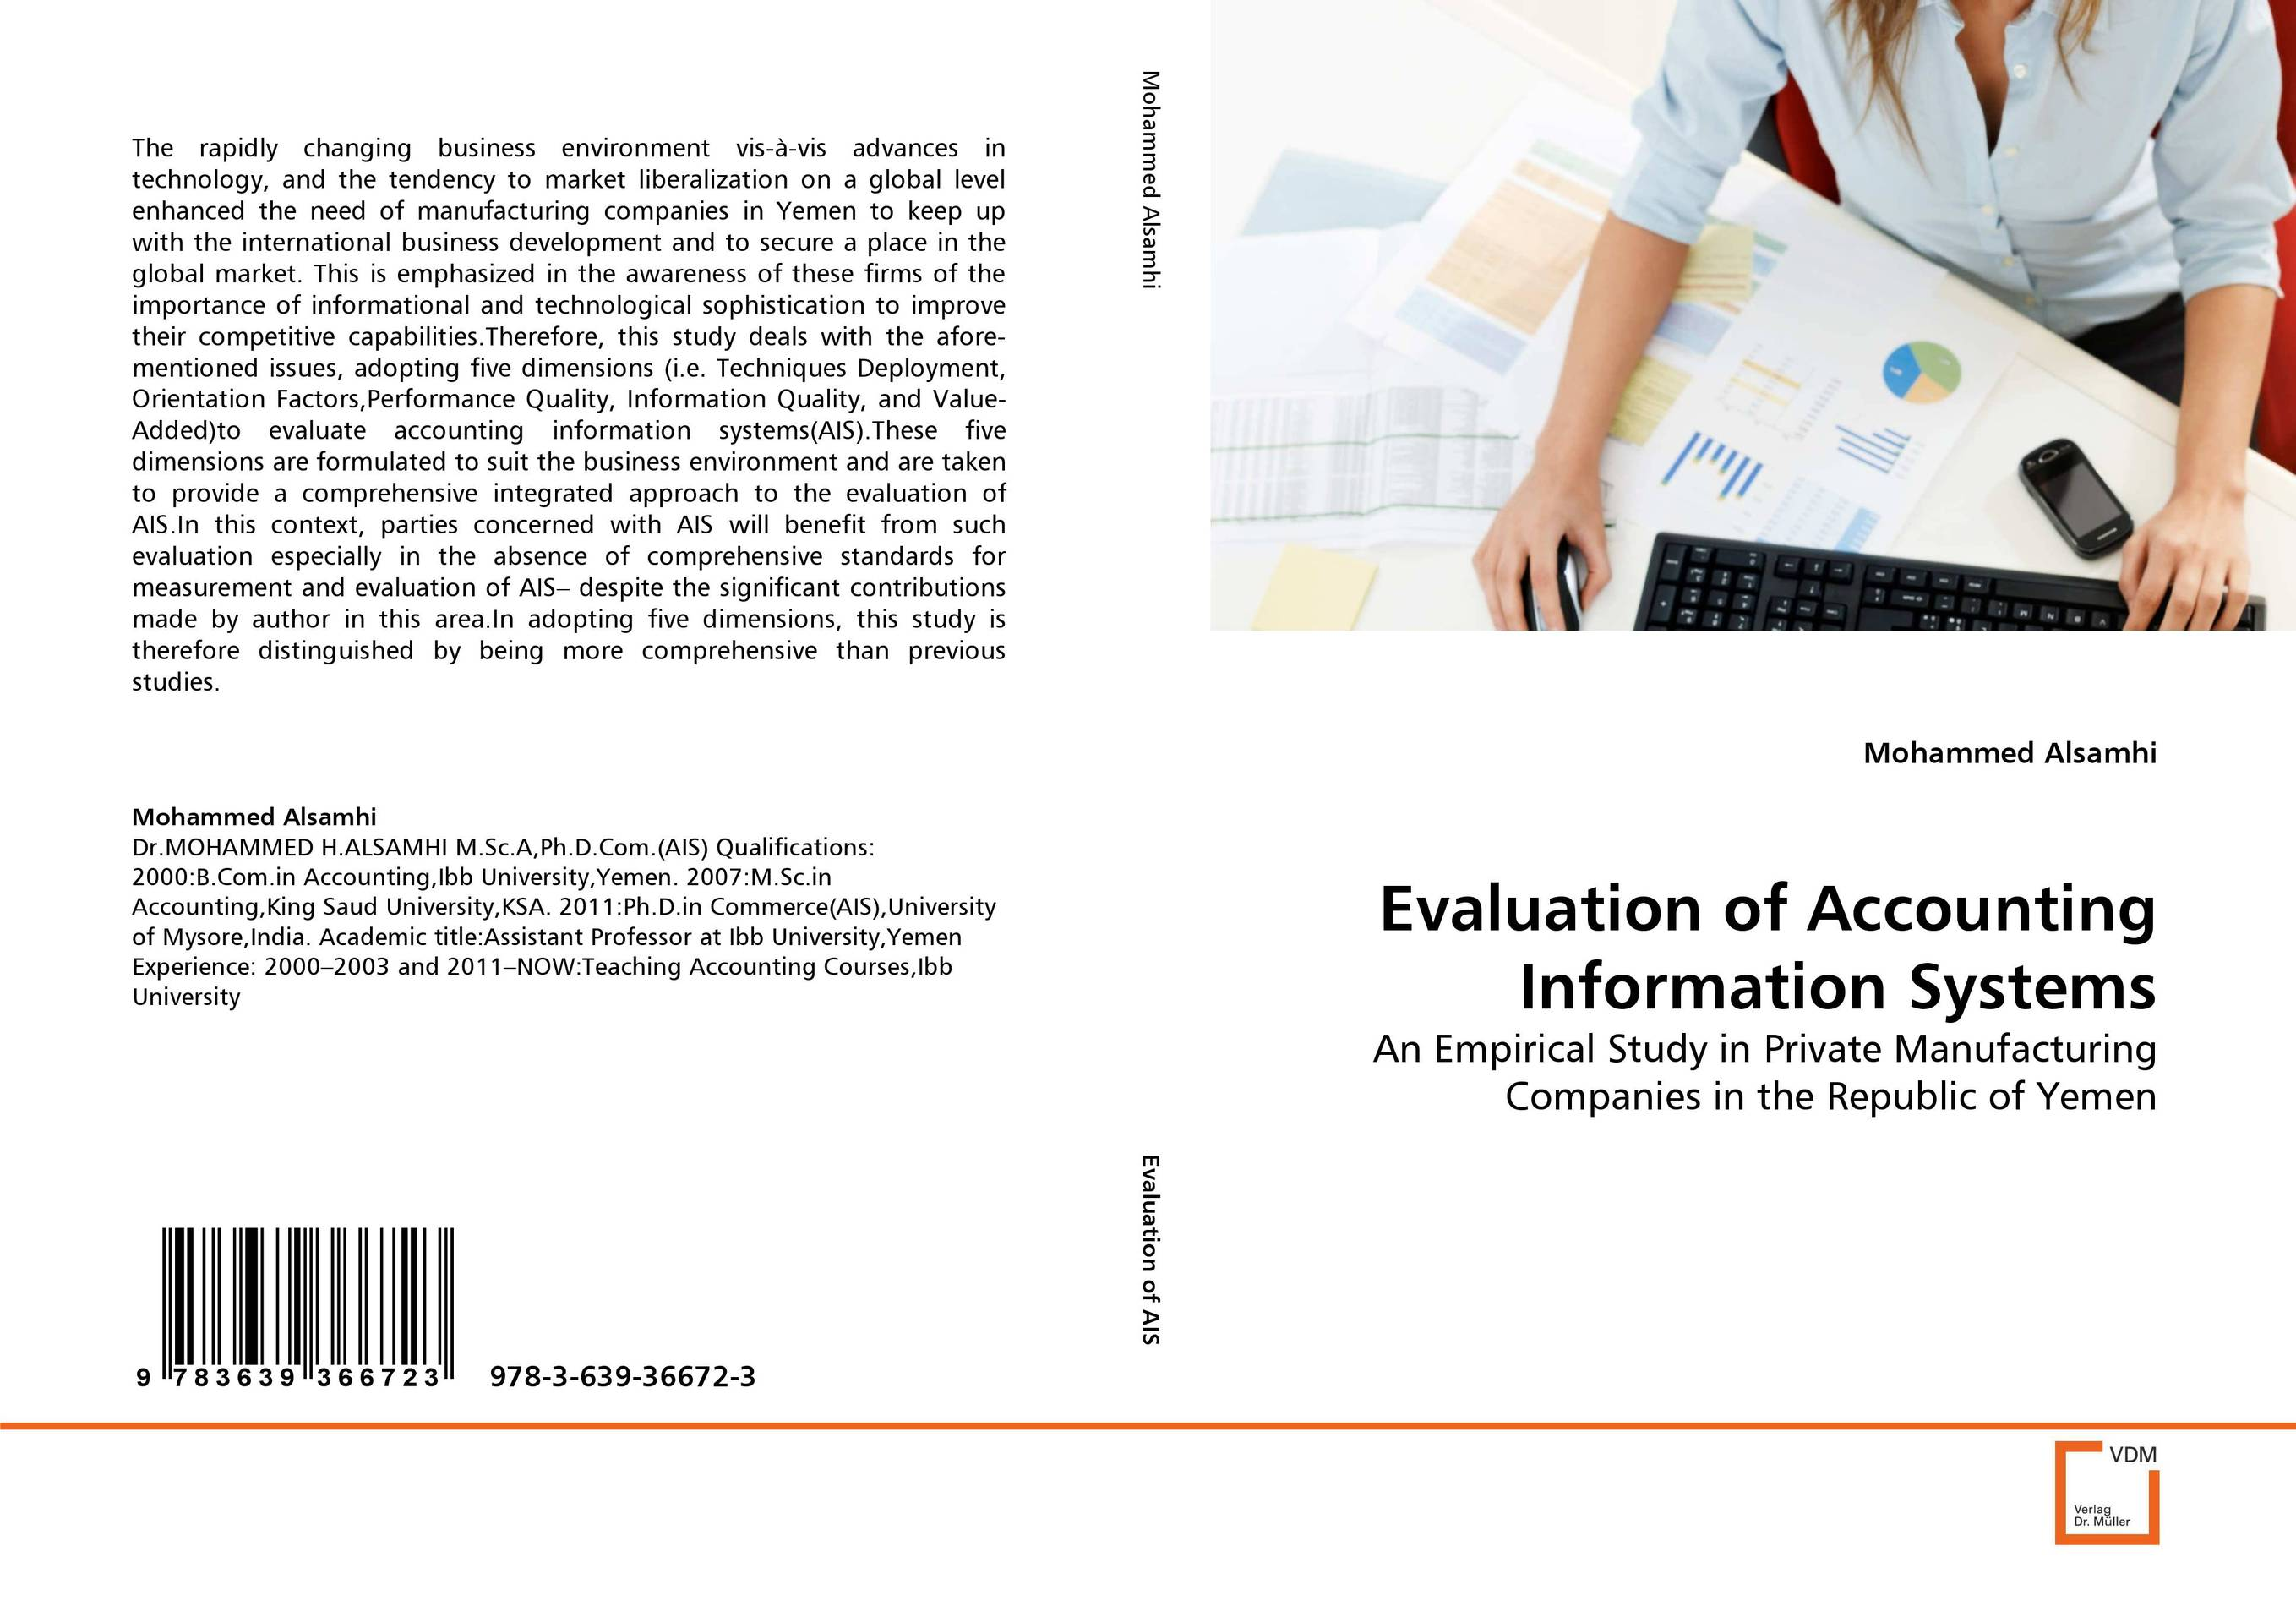 Evaluation of Accounting Information Systems  information technology and accounting curriculum in egypt